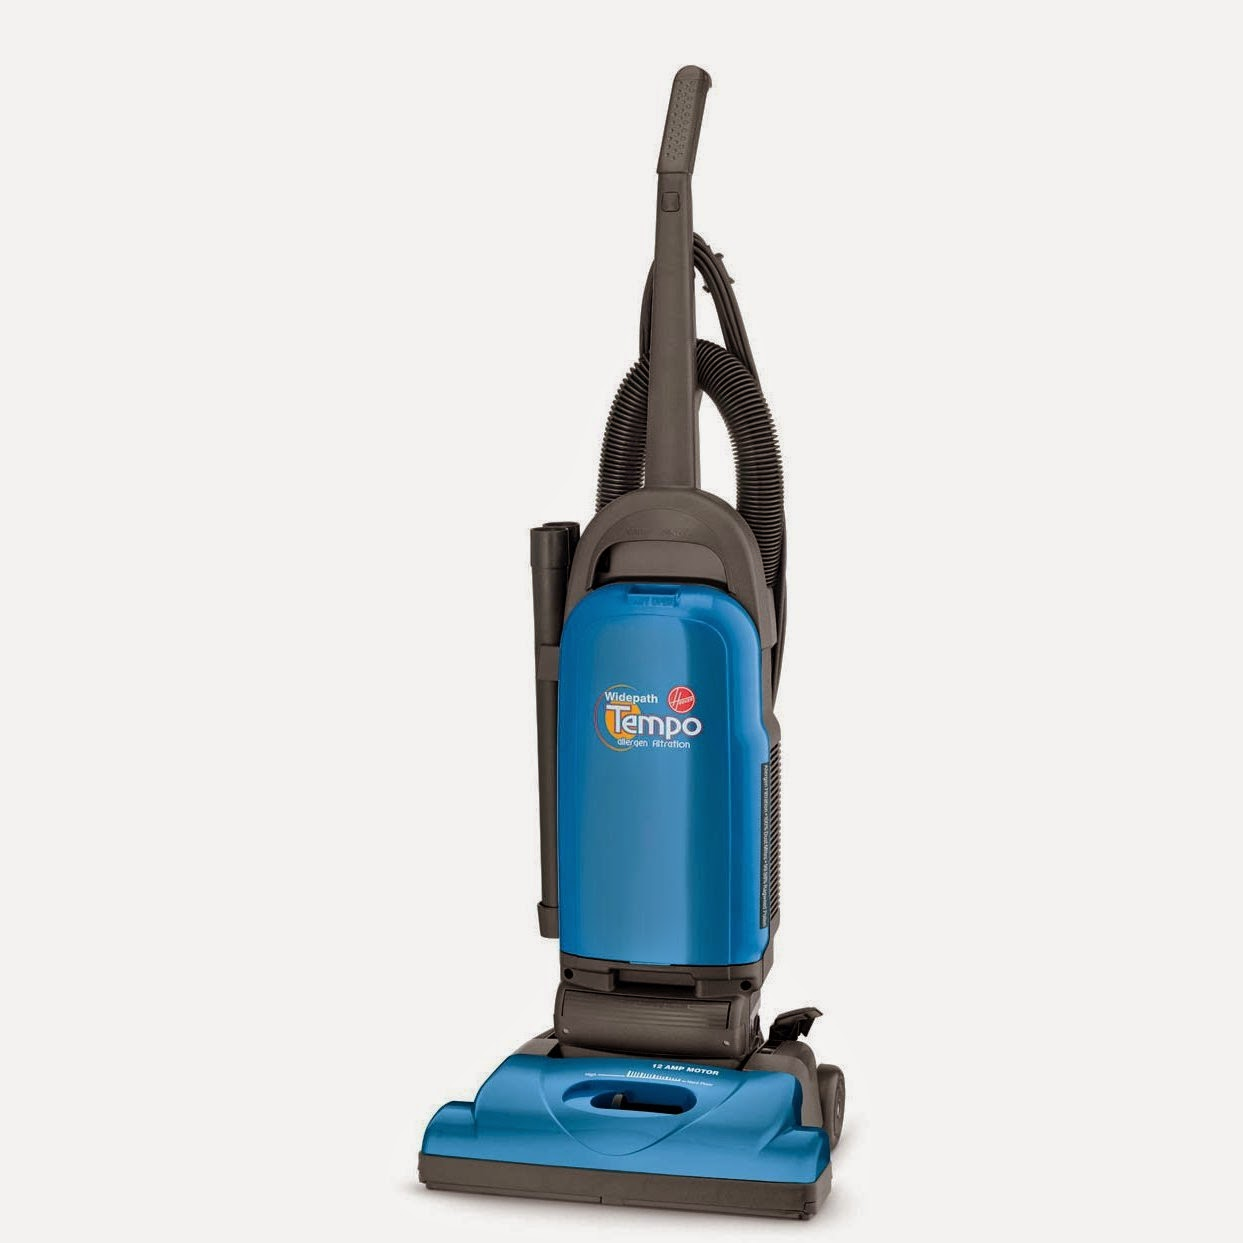 Burning Smell From Vacuum How To Fix